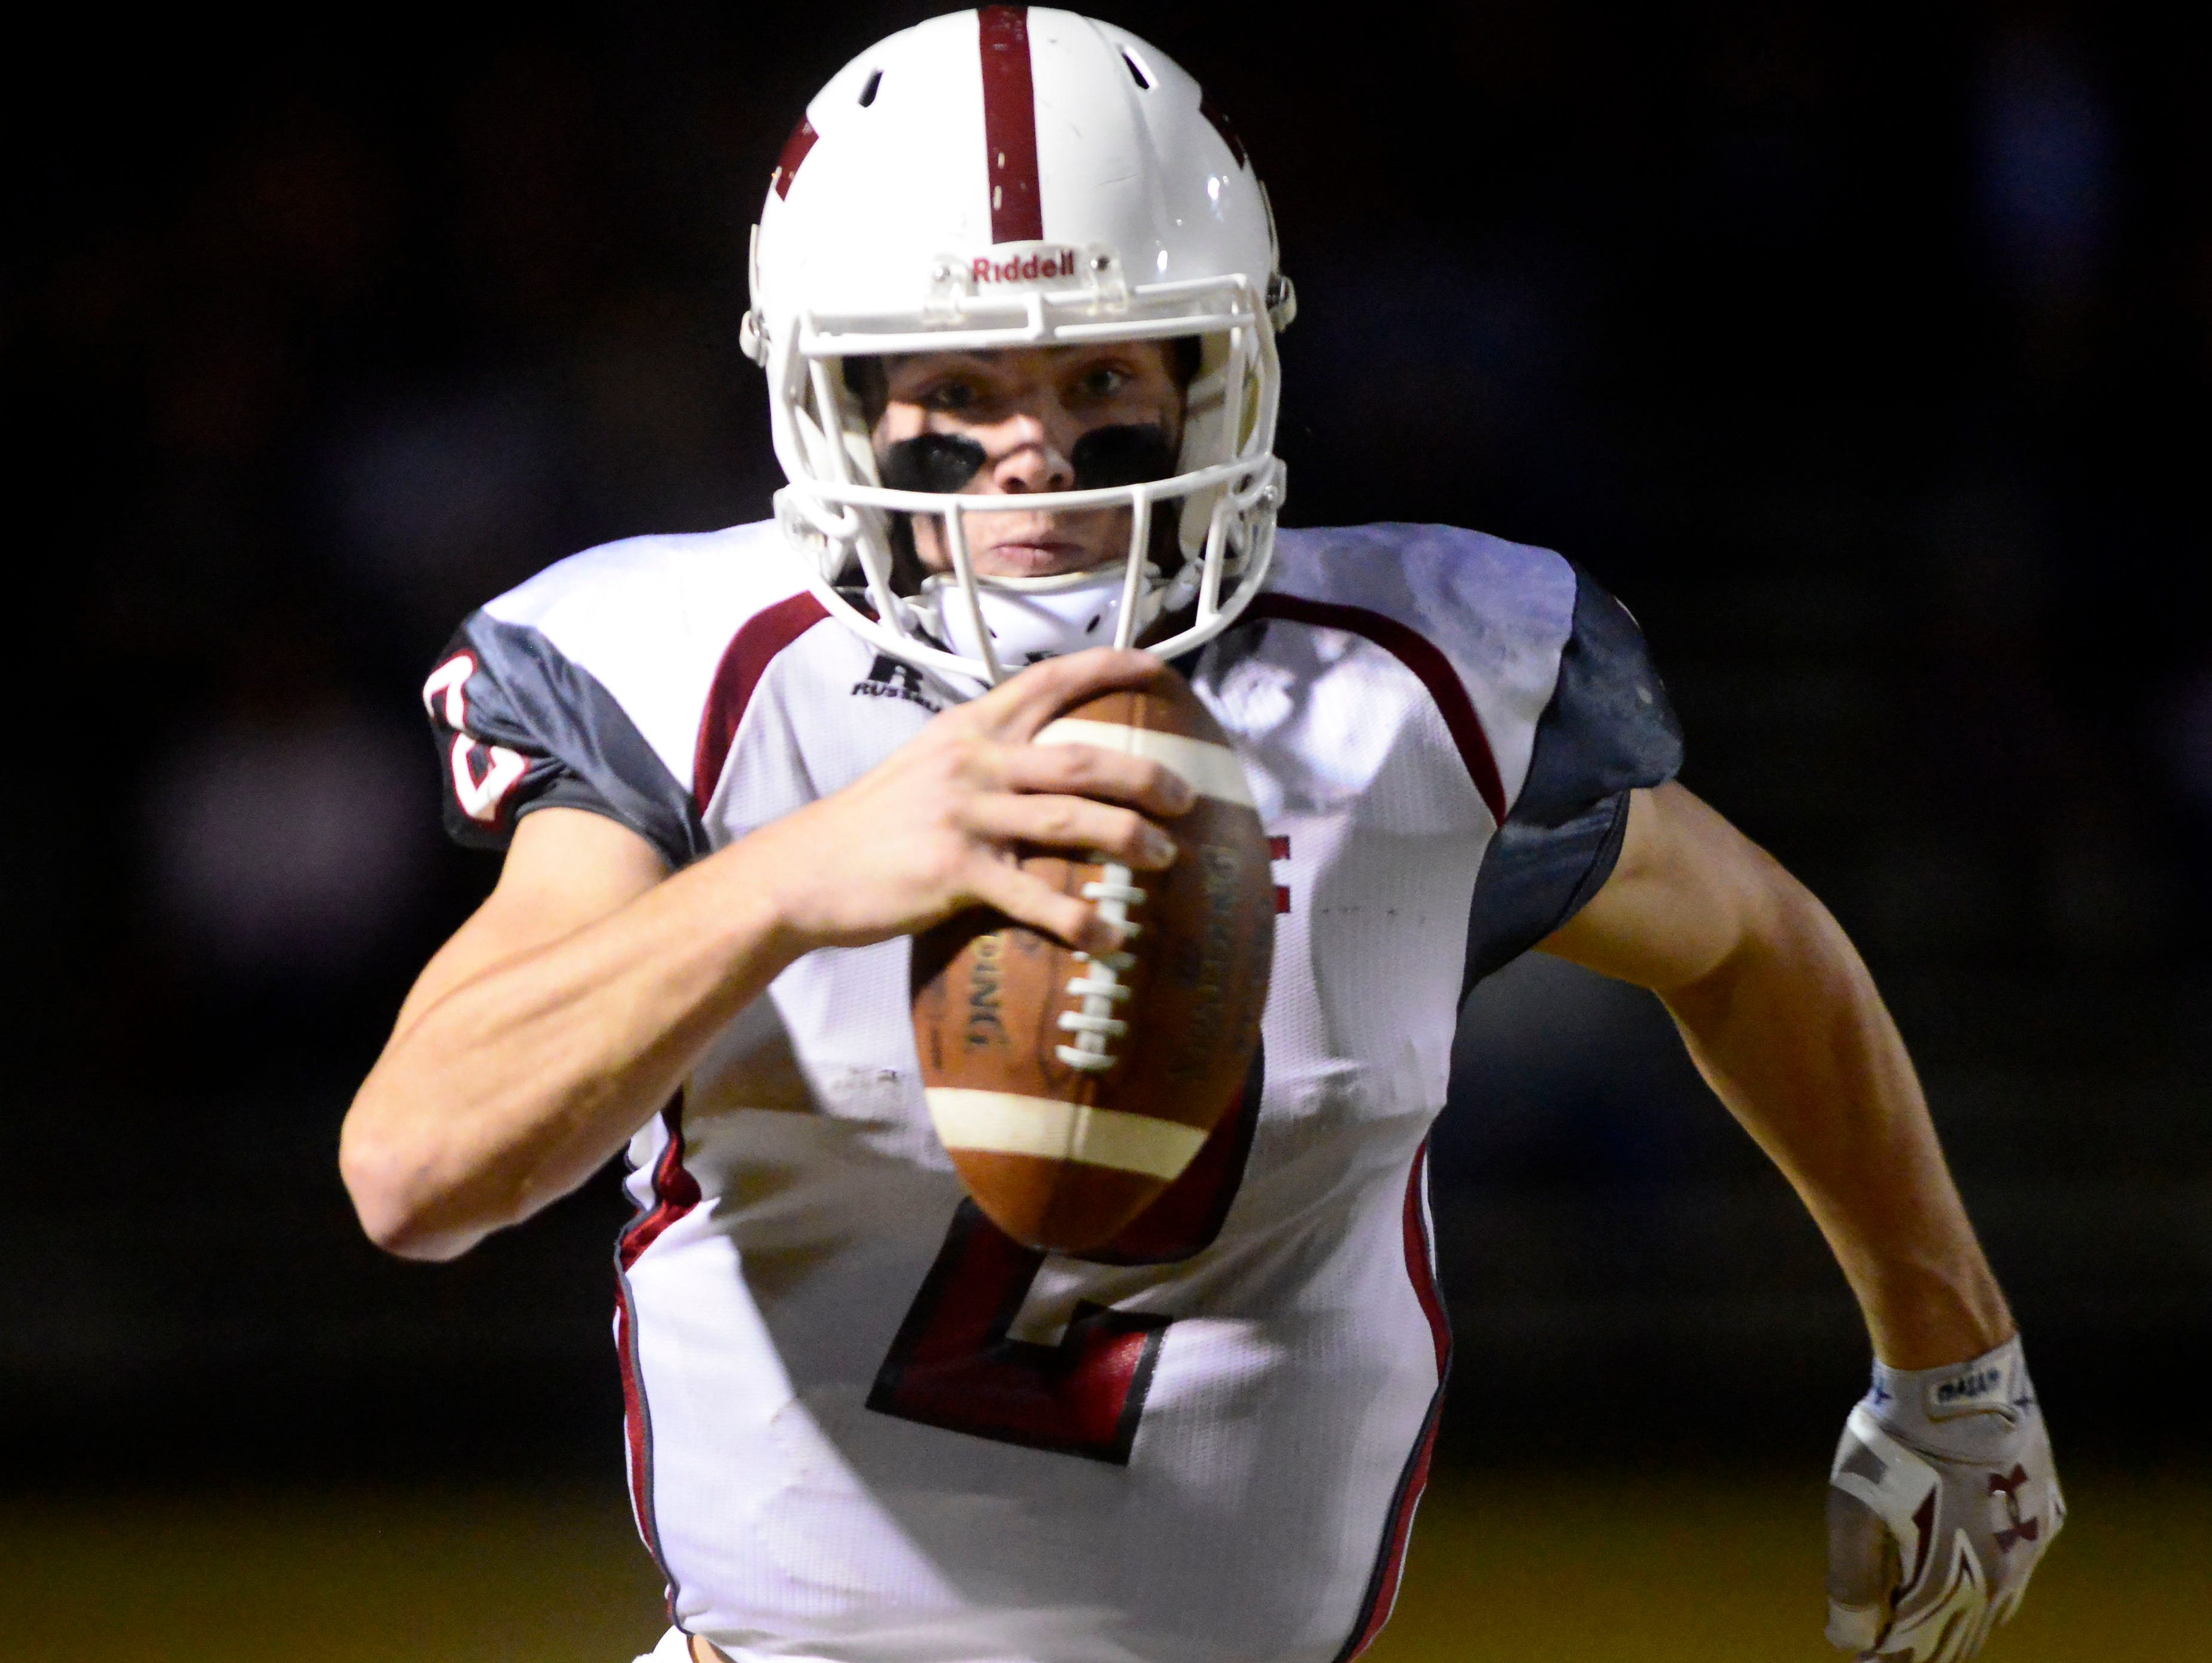 Tate High School quarterback Sawyer Smith keeps the ball Friday while playing Niceville. Tate beat Niceville 21-20 and advance to the Class 6A state semifinals.